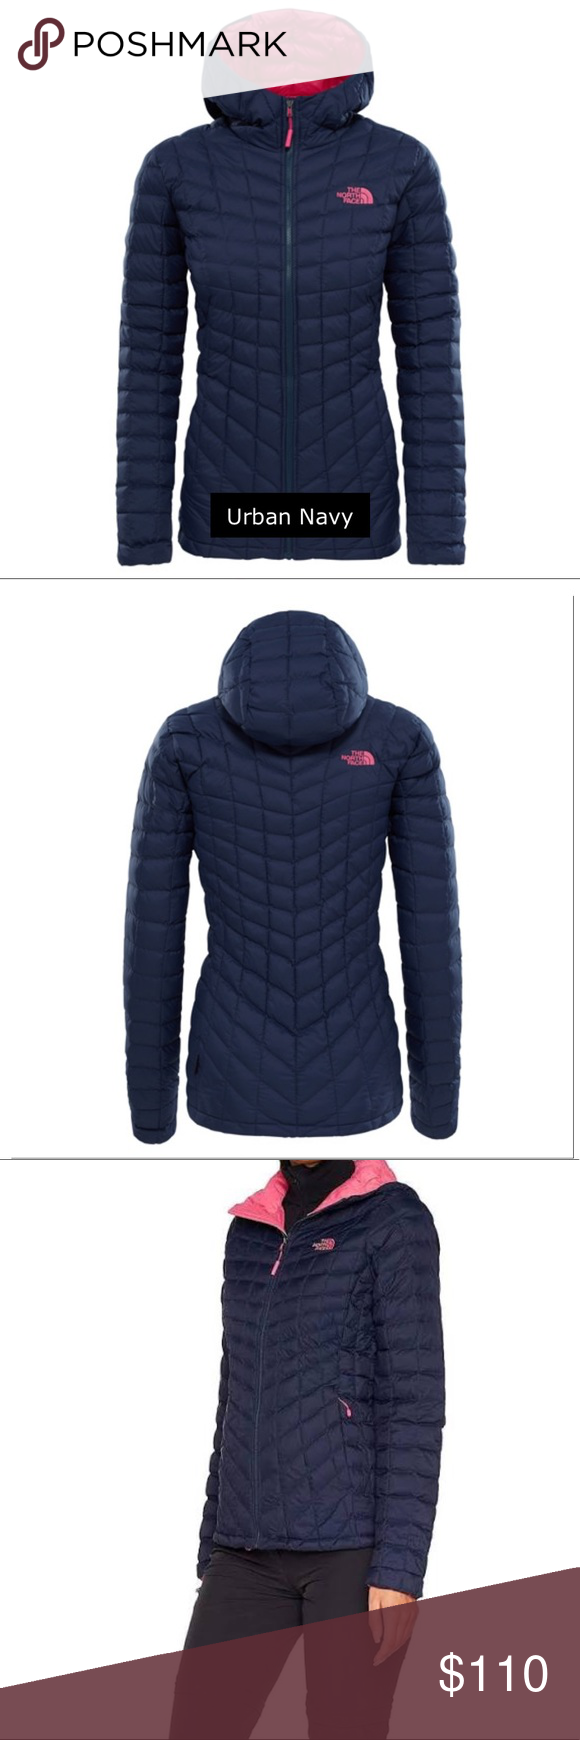 The North Face Women S Thermoball Hoody Jacket North Face Women Hoodie Jacket Jackets [ 1740 x 580 Pixel ]